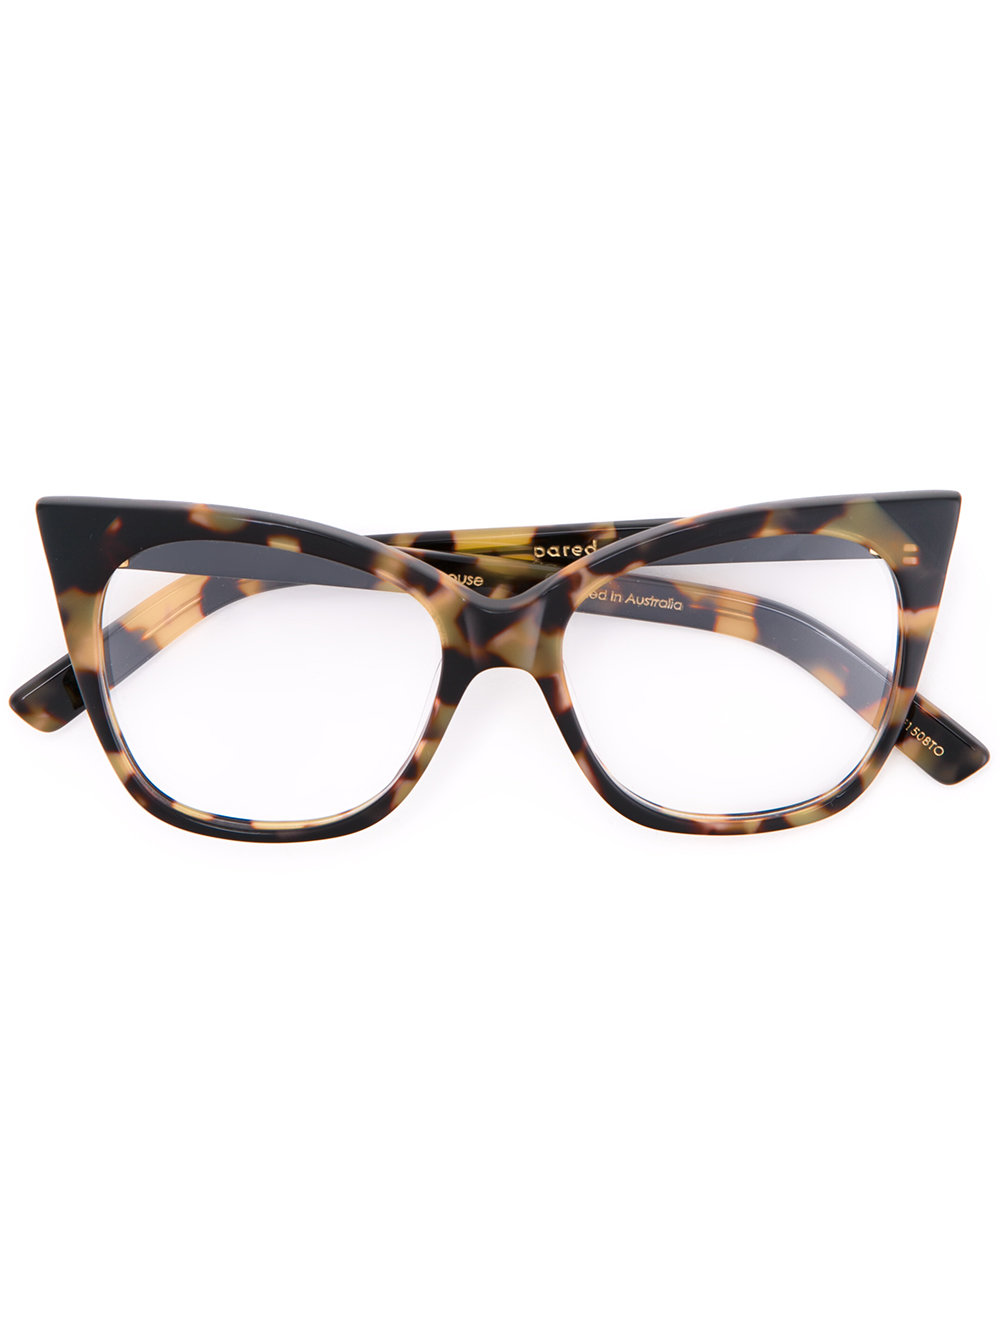 Shopping at We Love Glasses